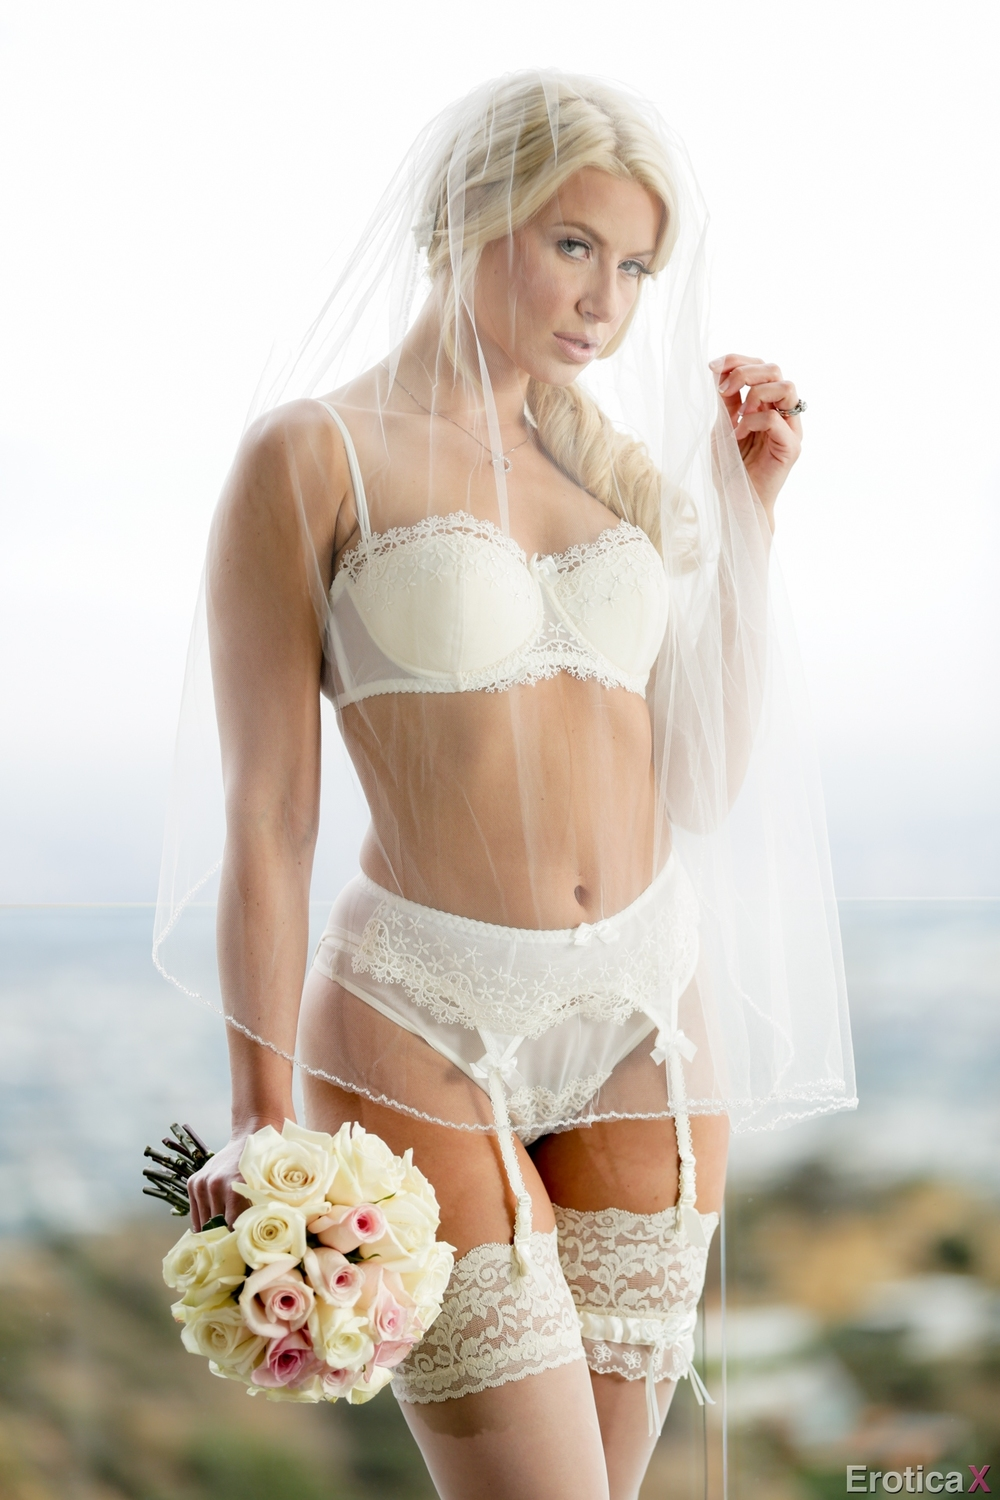 Naked Blonde Bride at Nightdreambabe